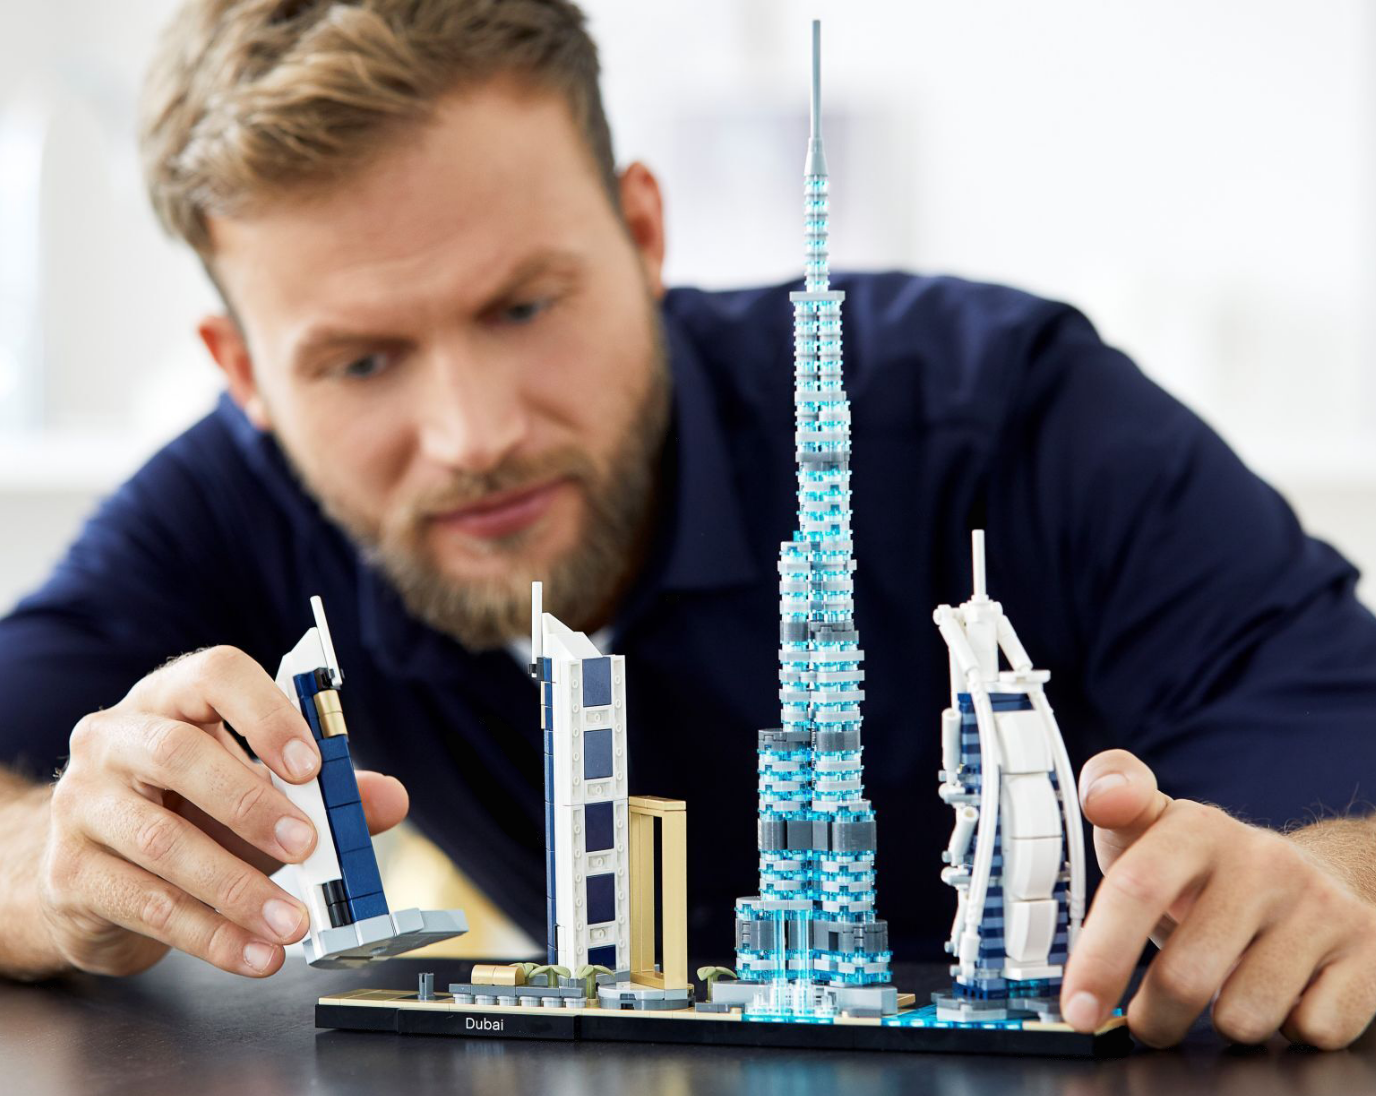 Adult building Dubai skyscrapers with LEGO bricks